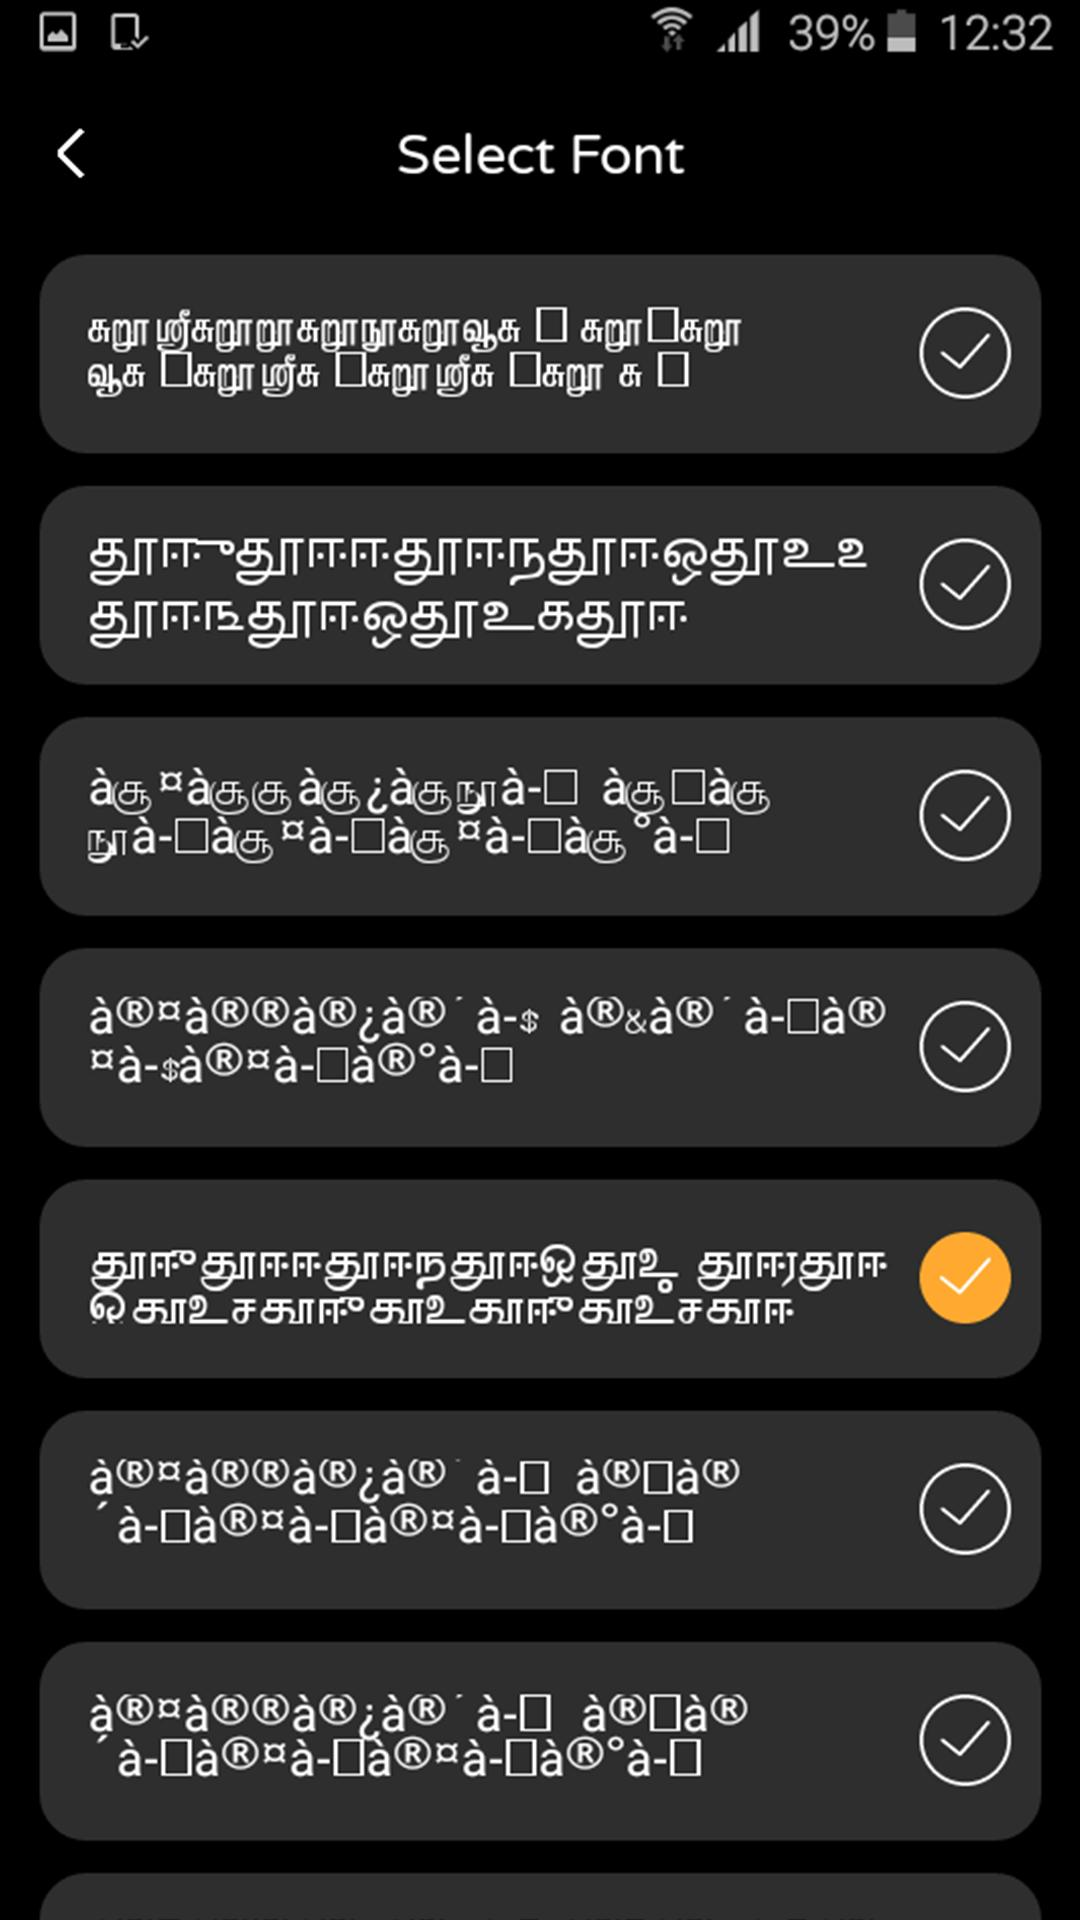 Tamil Keyboard - Tamil Voice Typing Keyboard for Android